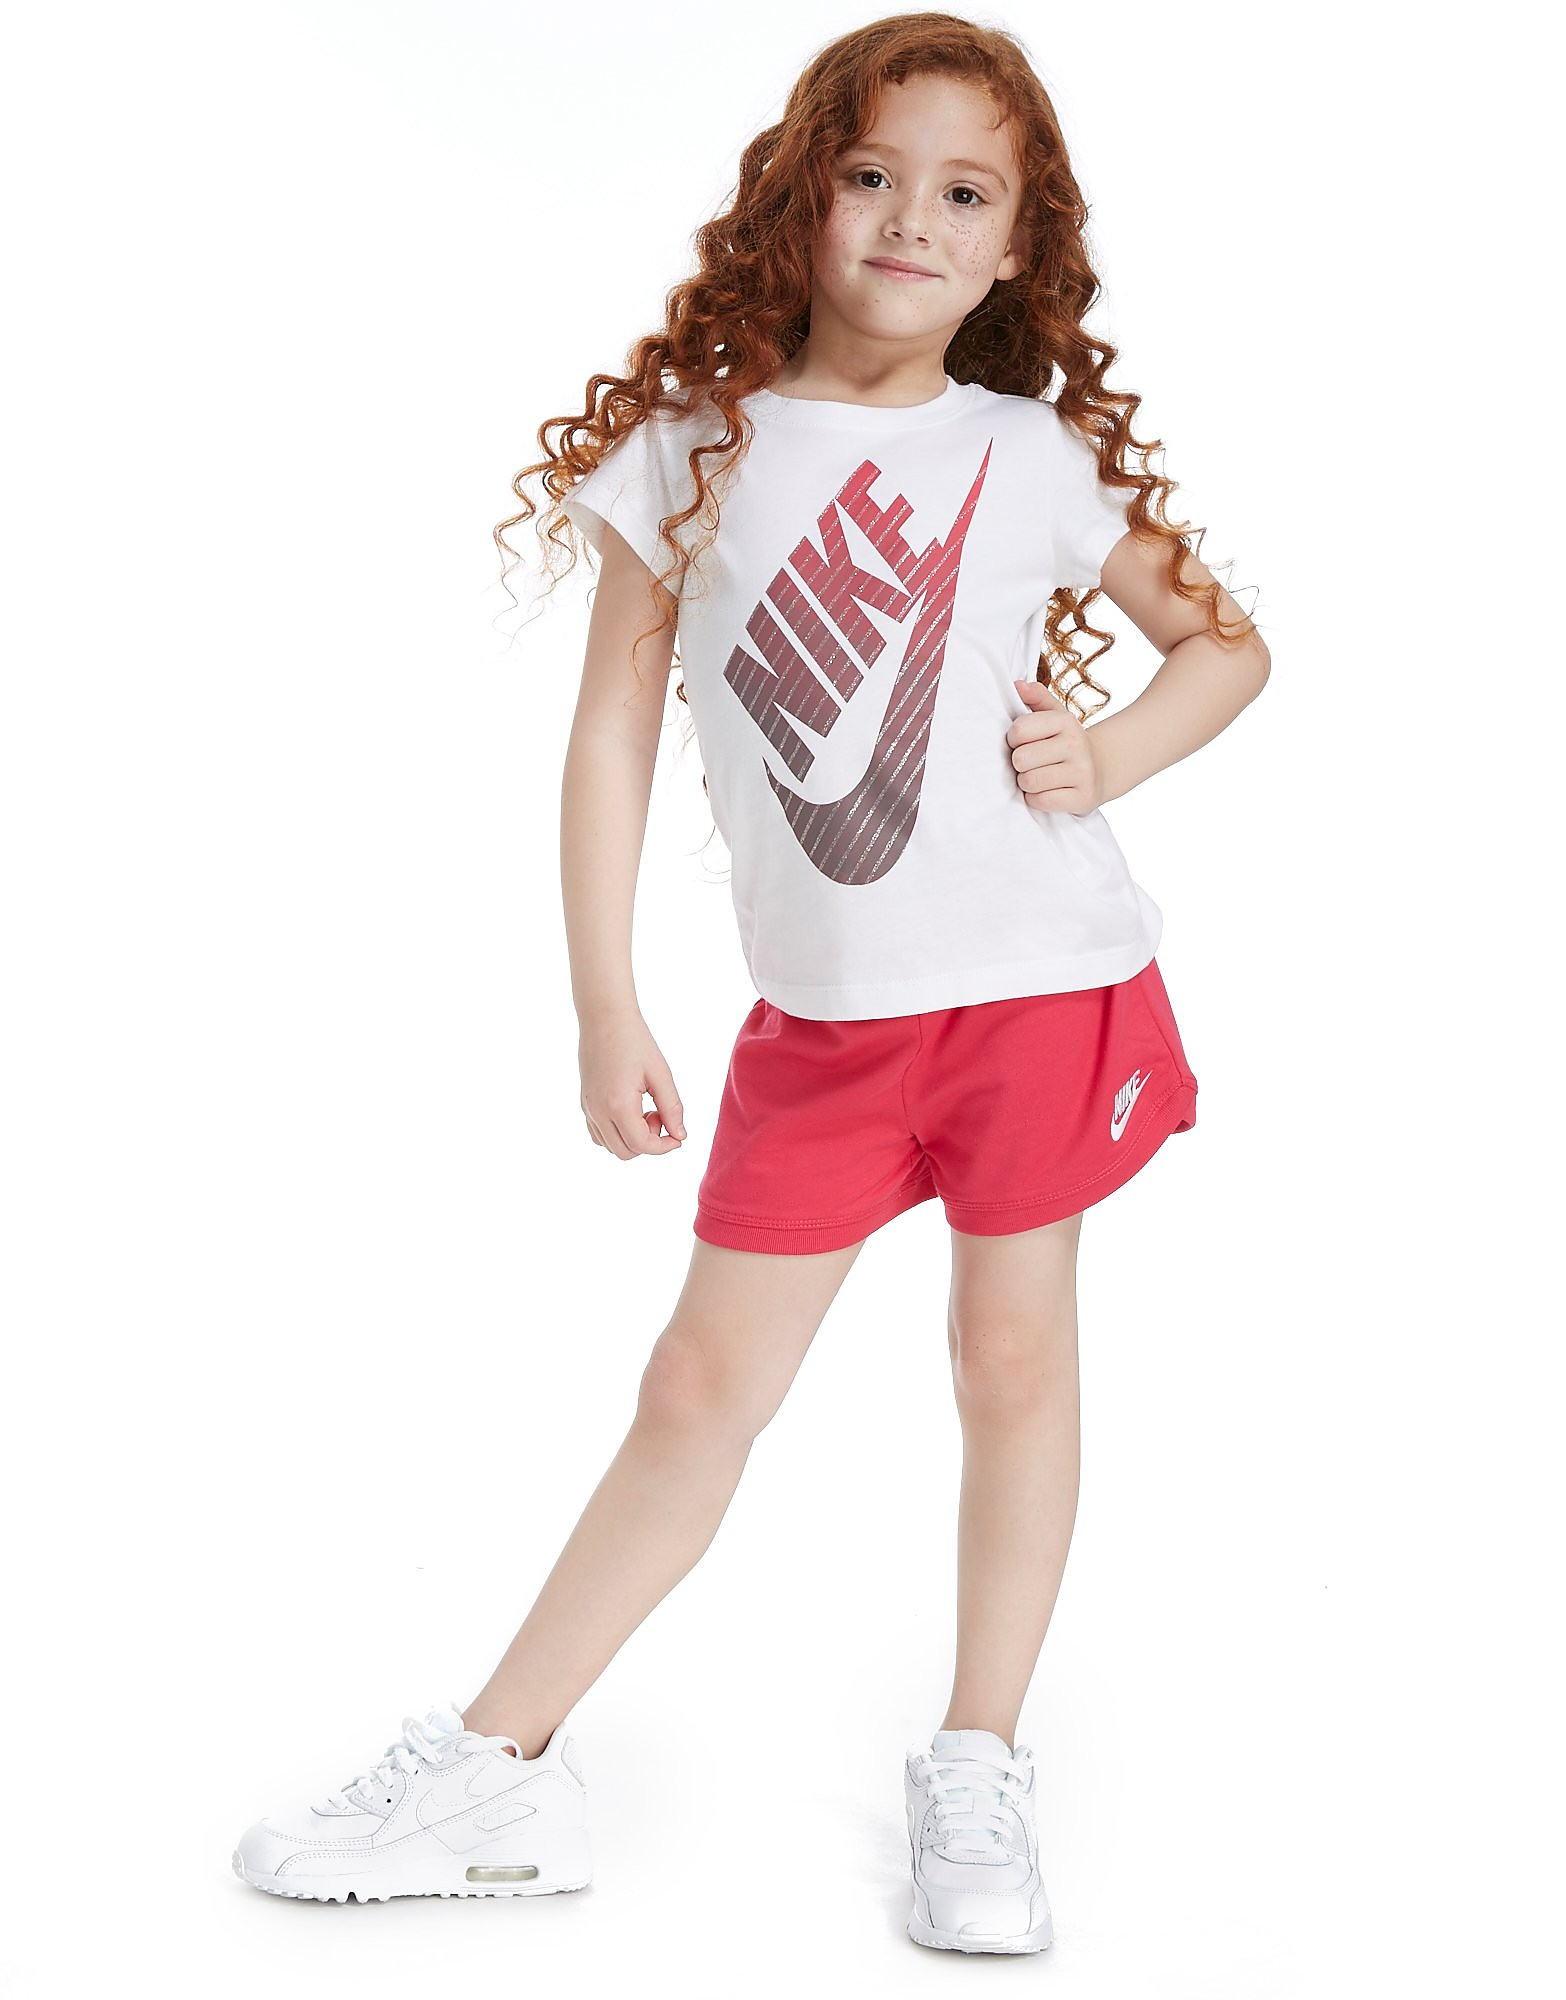 Nike Girls' Futura T-Shirt/Shorts Set Children